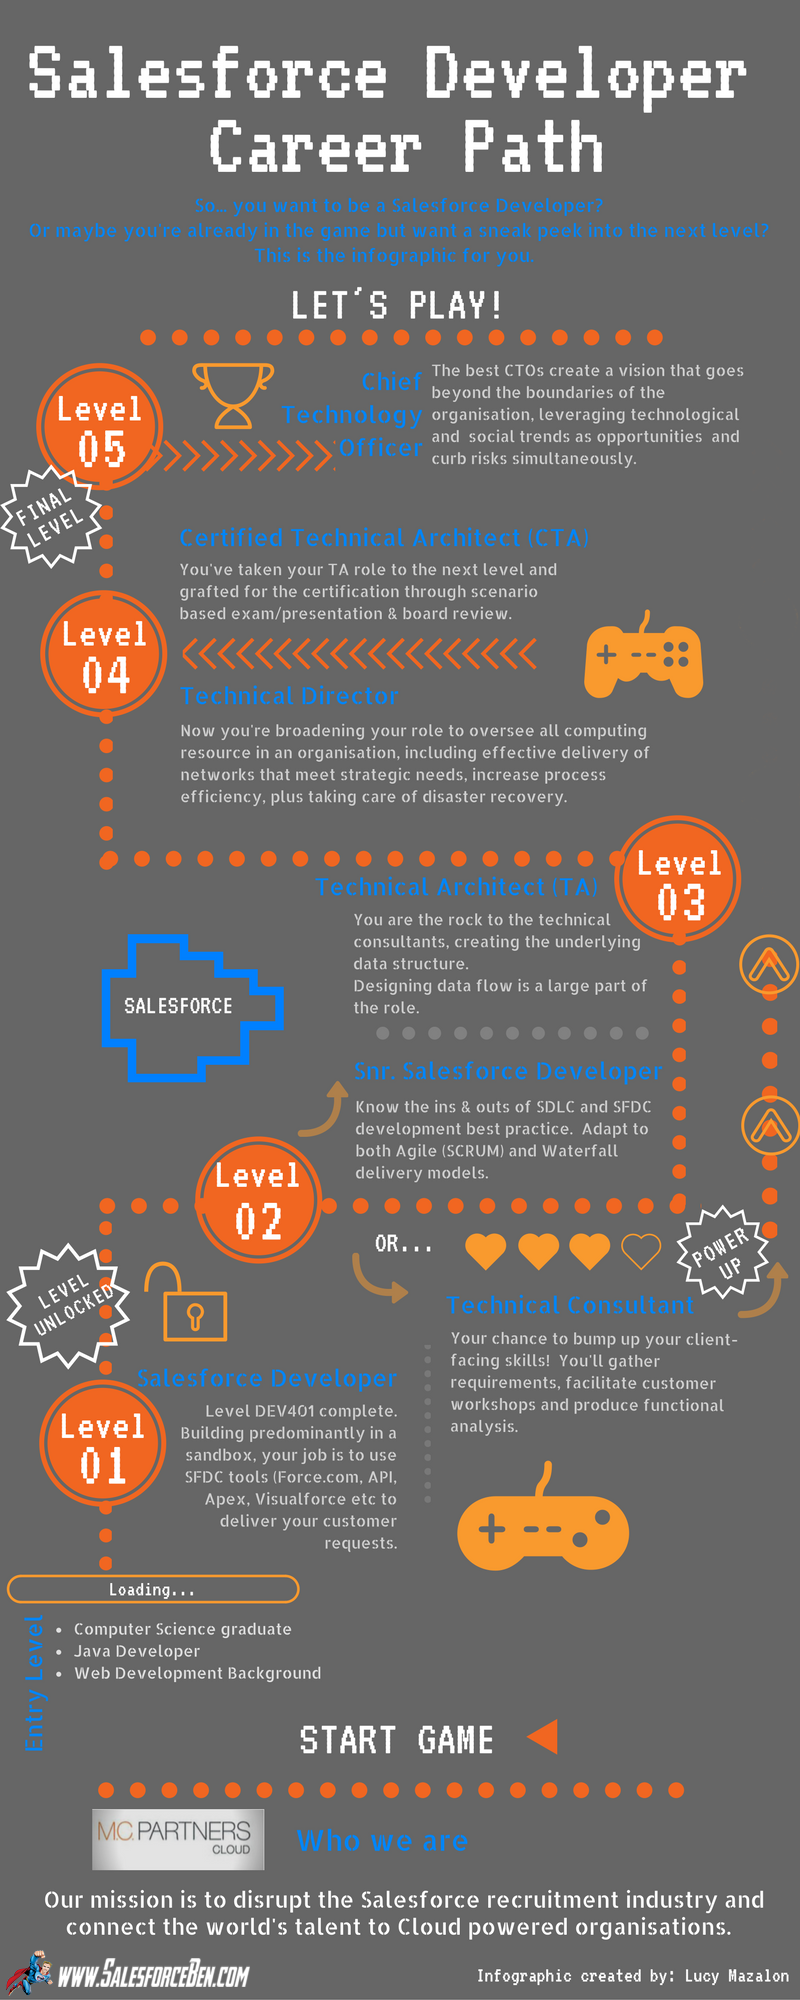 Salesforce Developer Career Path Infographic